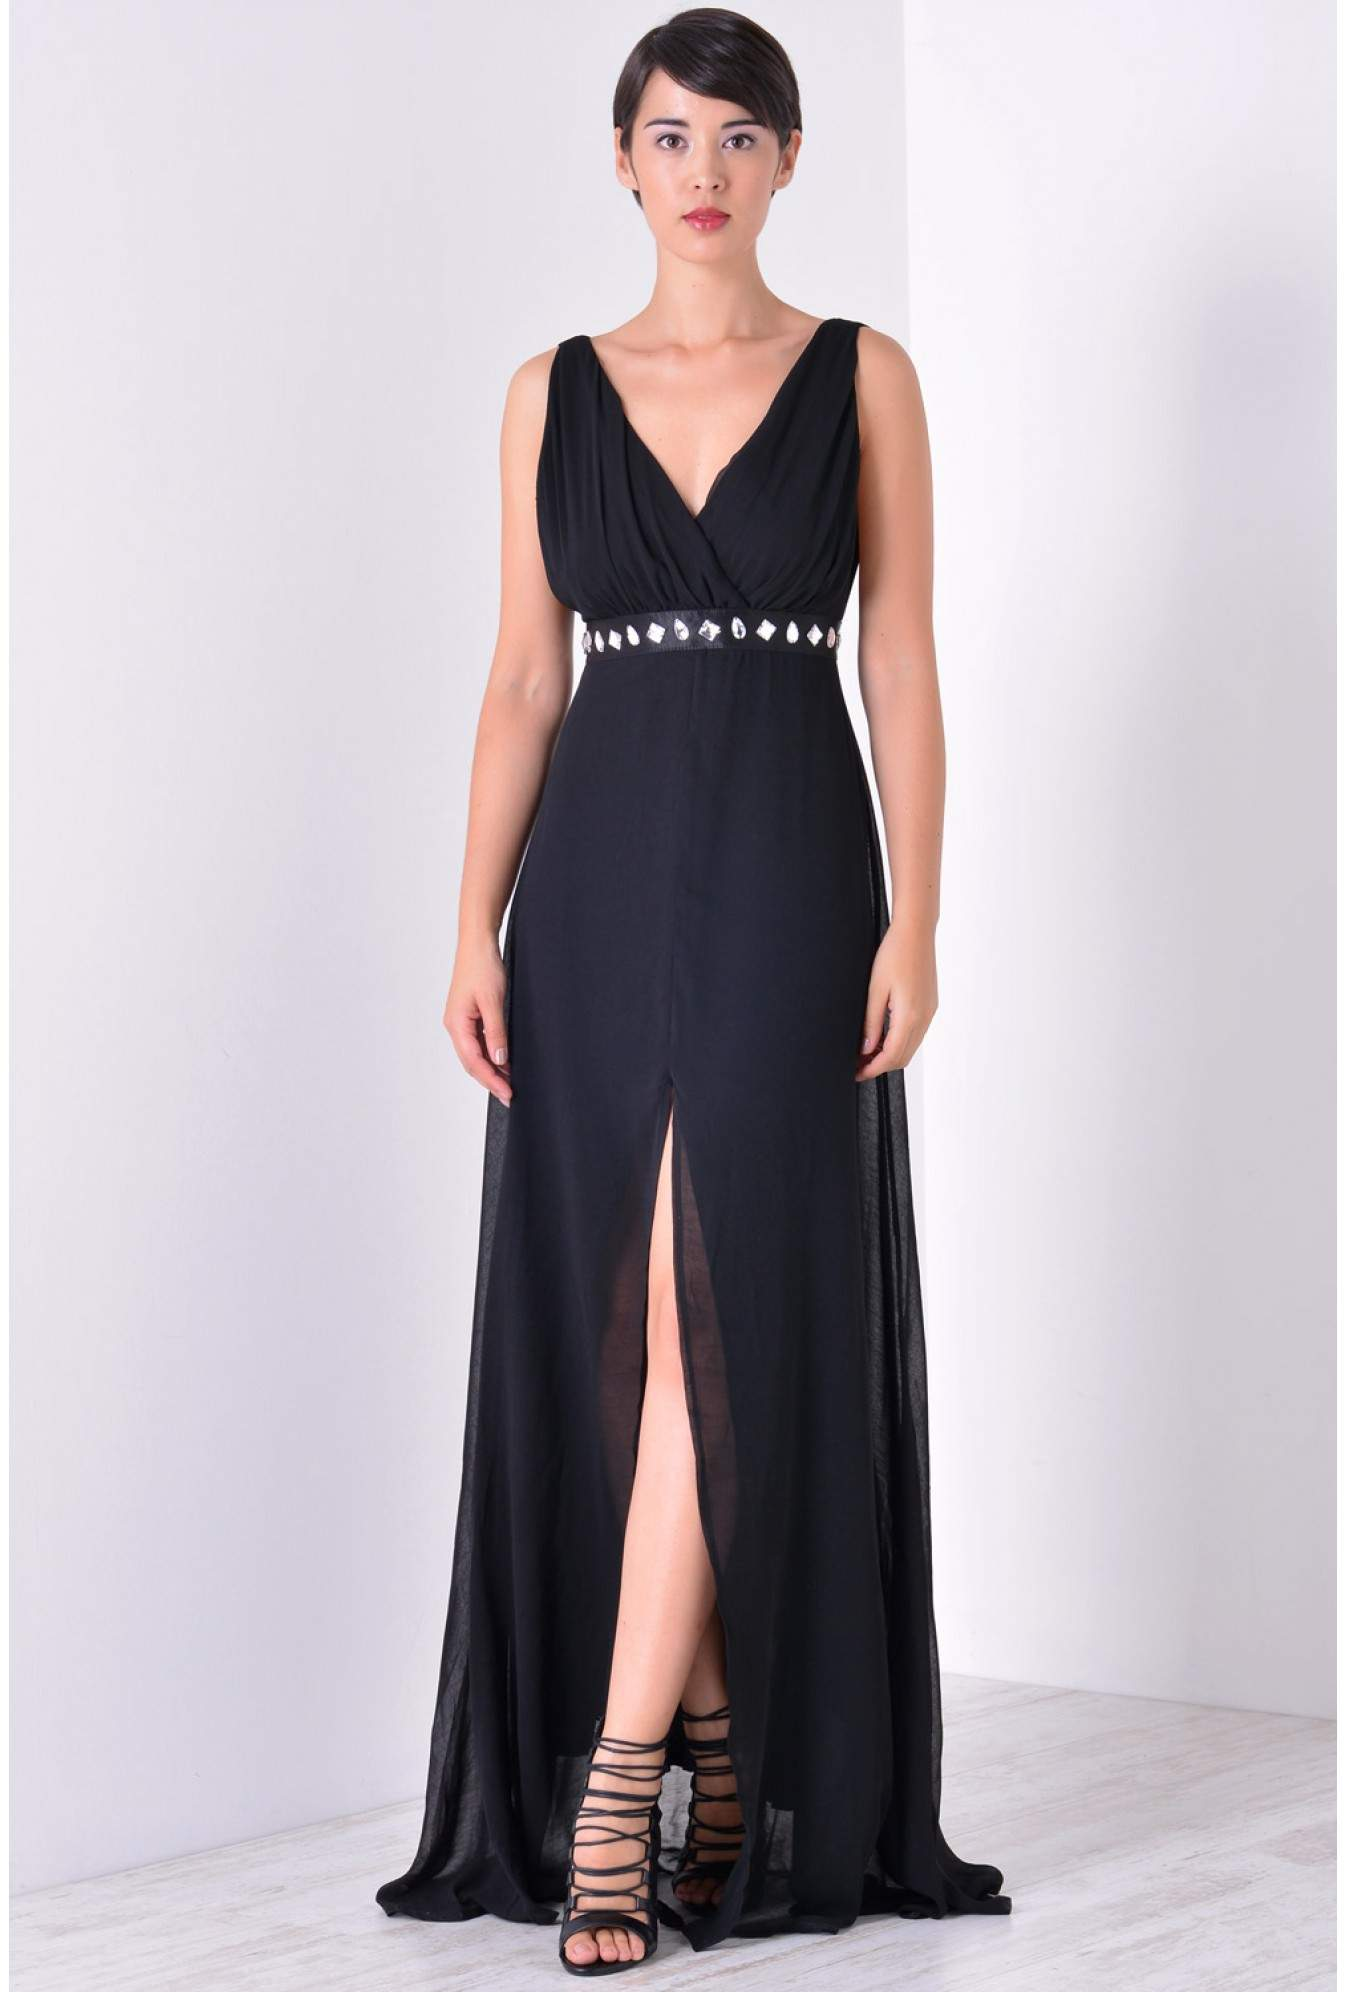 d8449c6fe436 Goddiva Daisy Diamante Belt Maxi Dress in Black | iCLOTHING